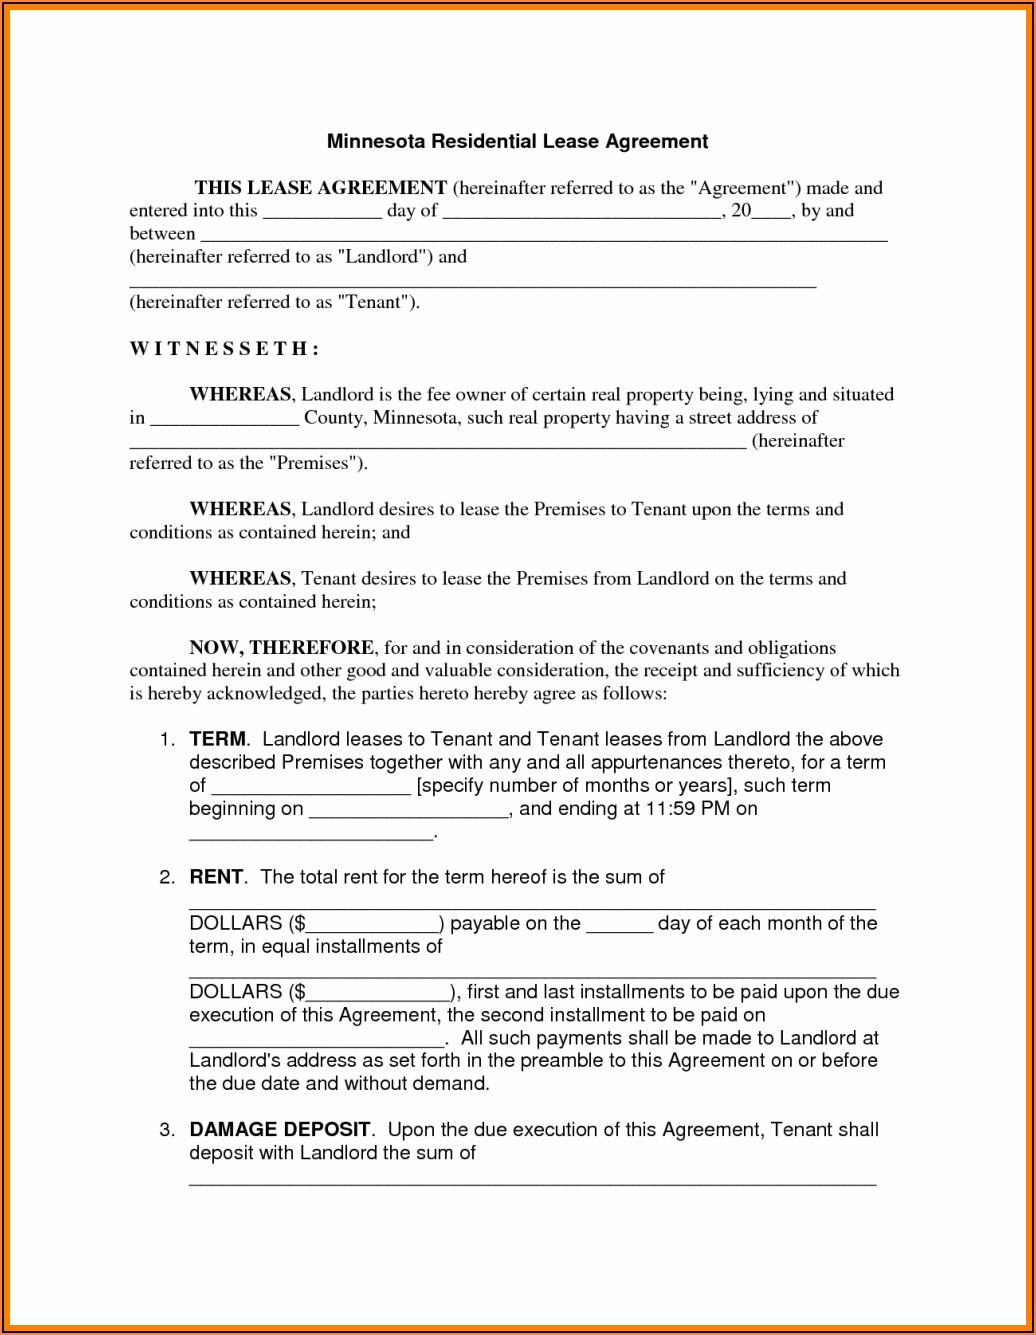 Free Minnesota Residential Lease Agreement Forms